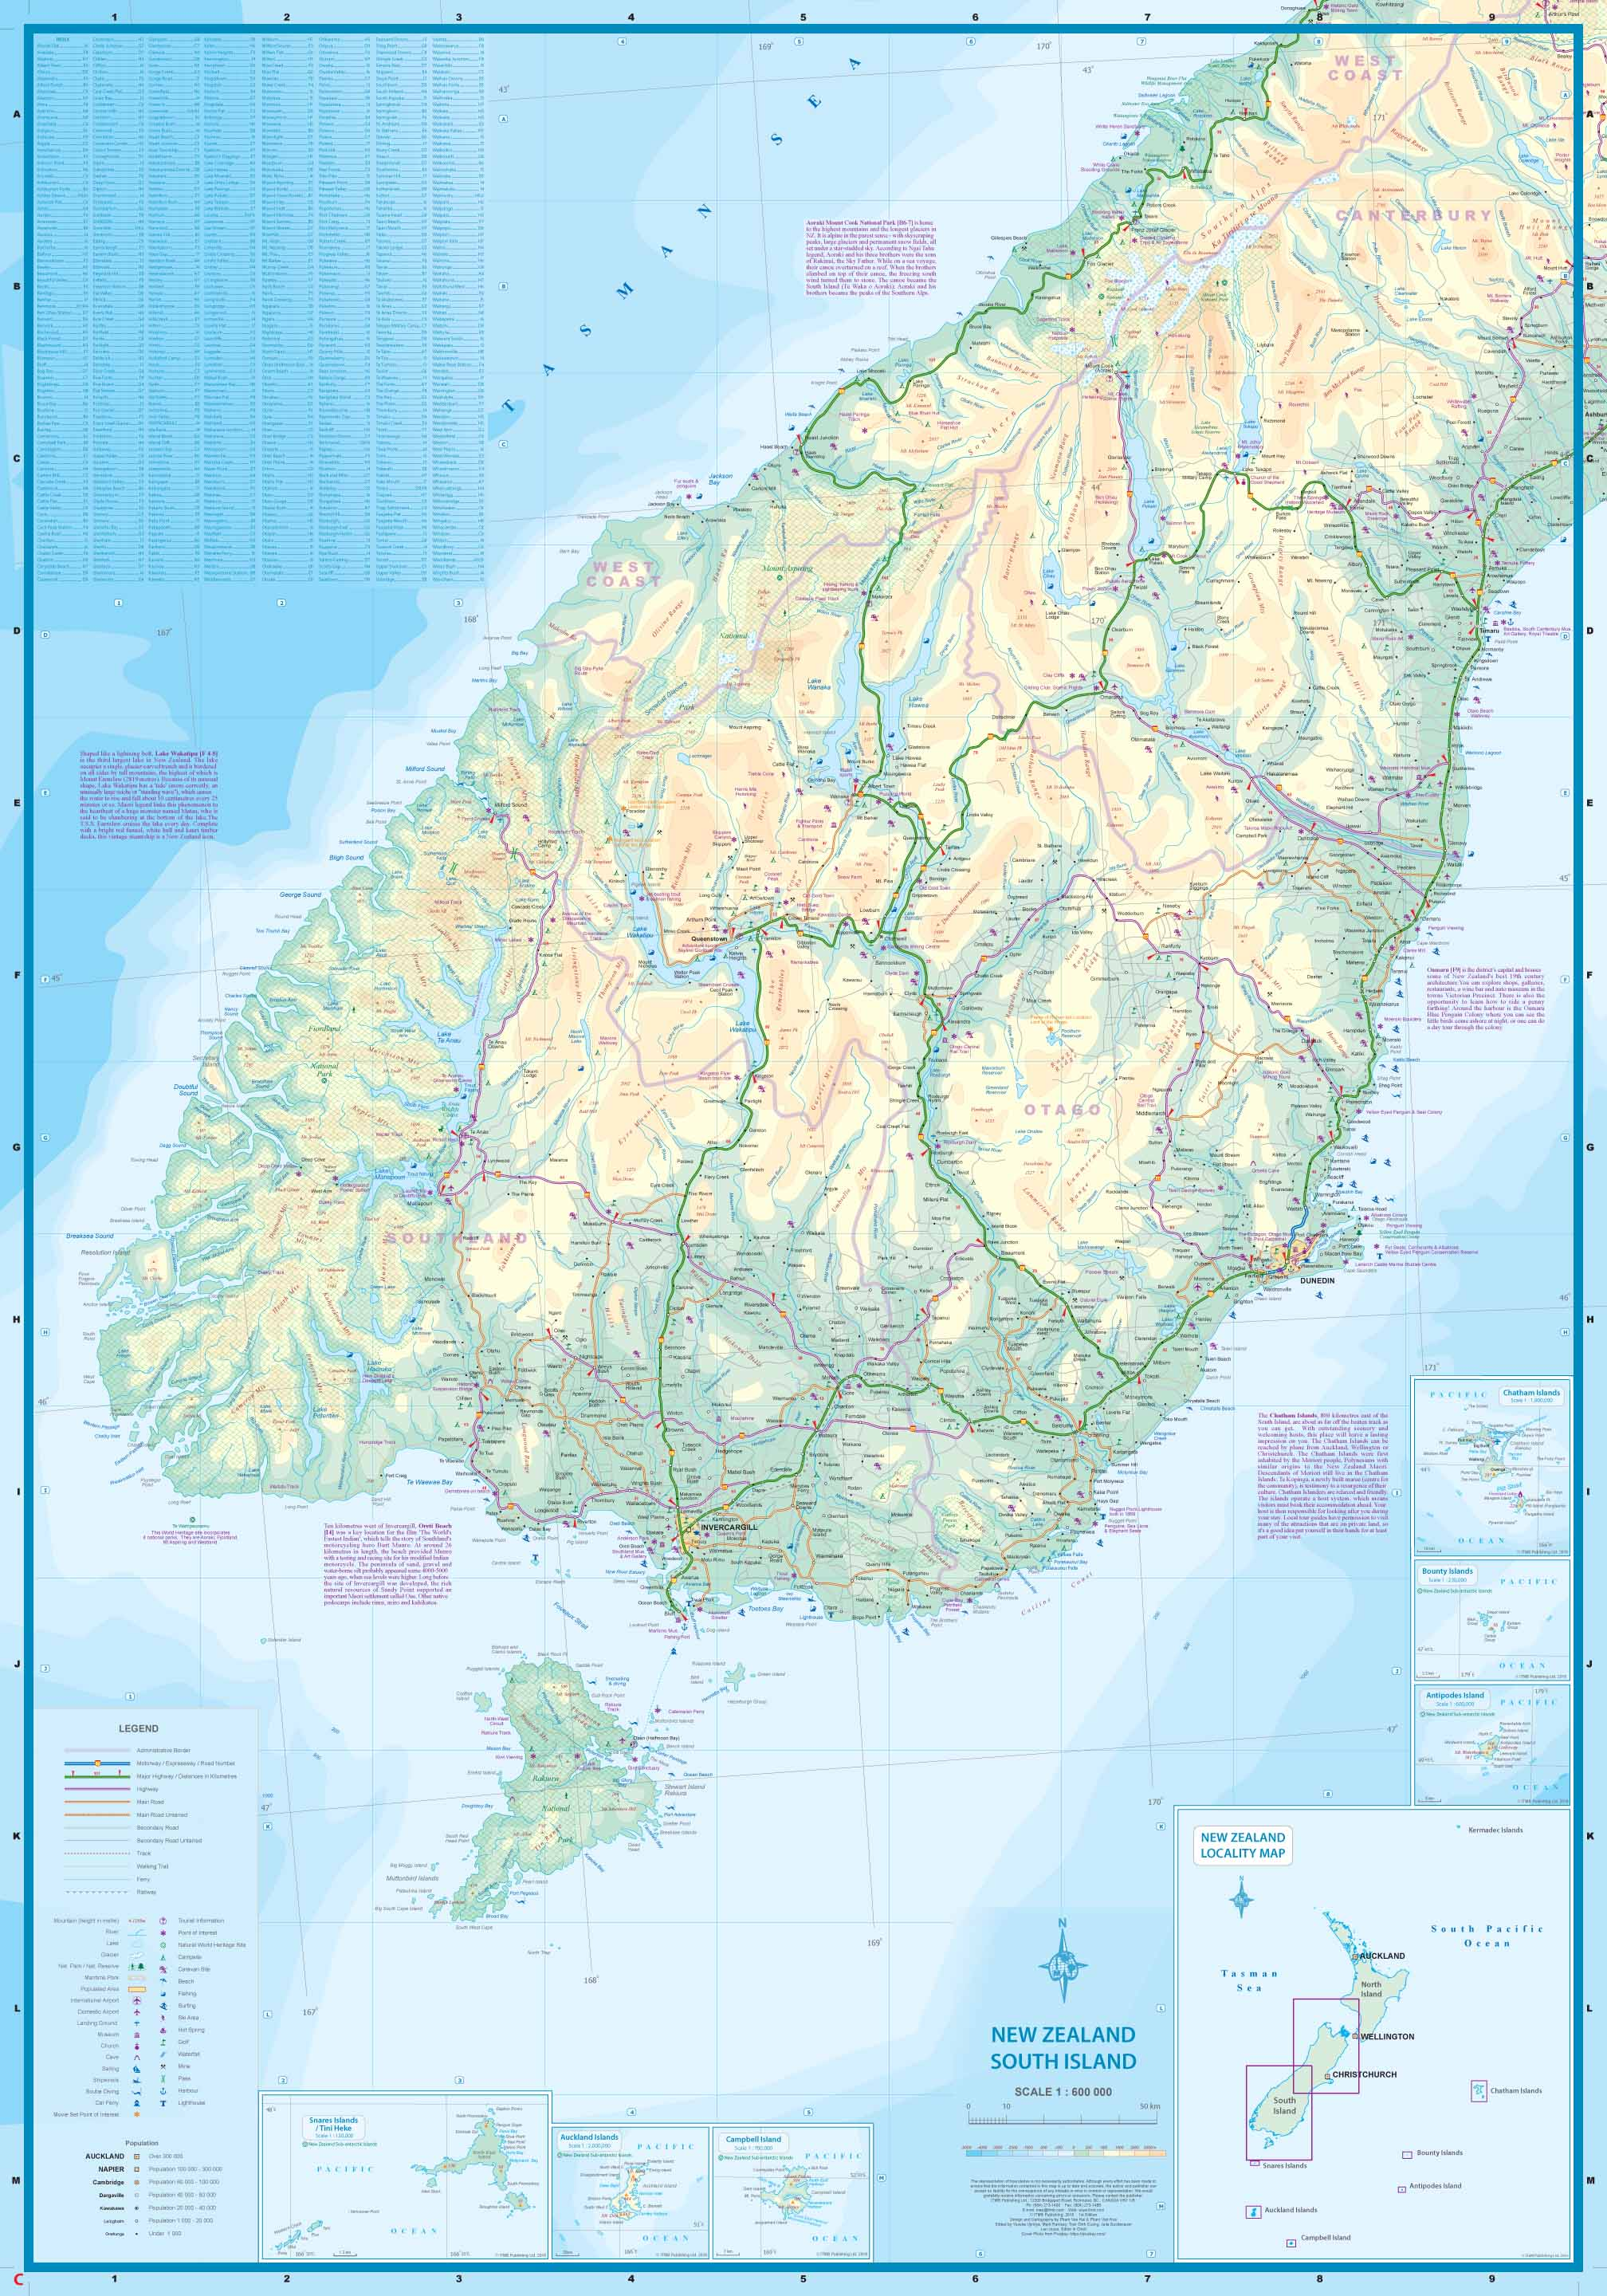 New Zealand Topographic Map.Maps For Travel City Maps Road Maps Guides Globes Topographic Maps